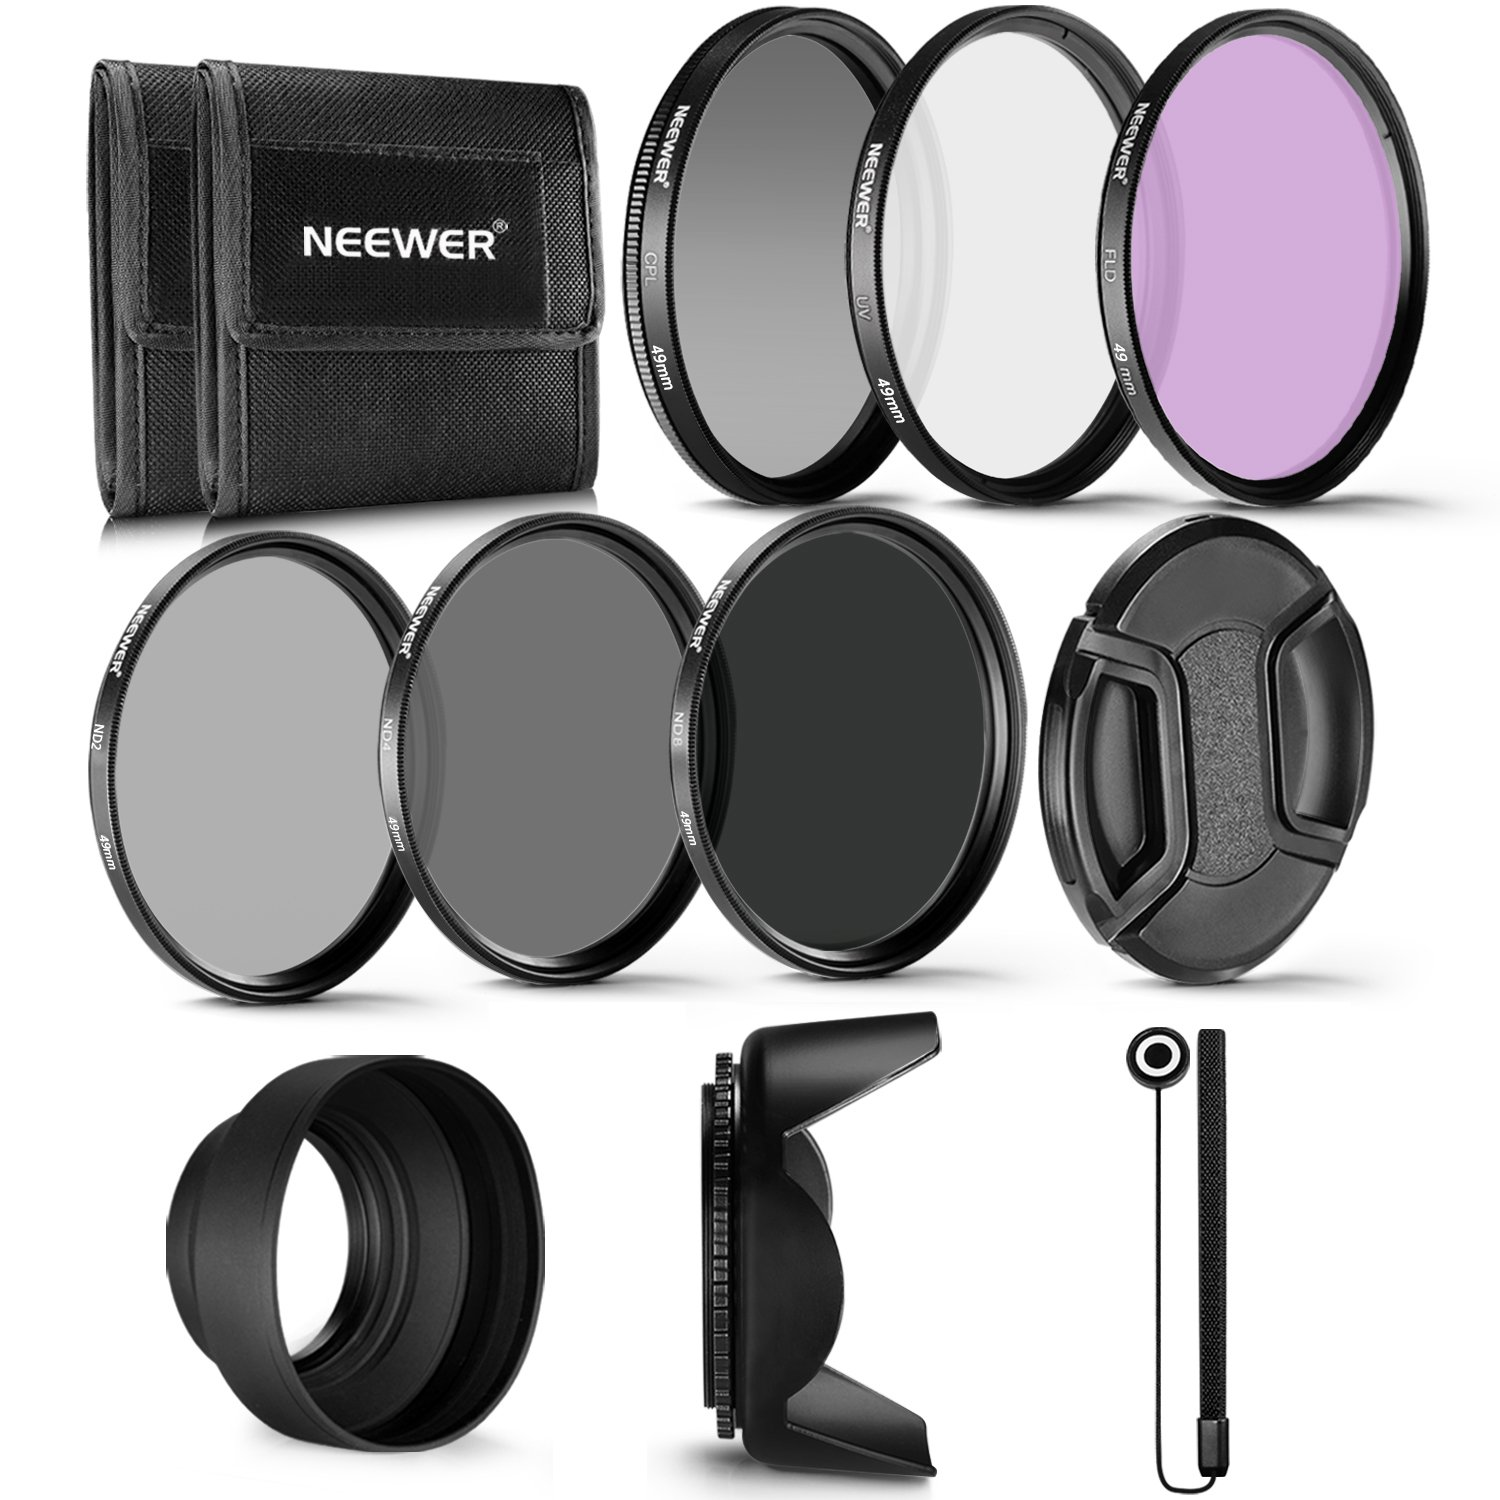 Neewer 49MM Professional UV CPL FLD Lens Filter and ND Neutral Density Filter(ND2, ND4, ND8) Accessory Kit for Sony Alpha A3000 and The NEX Series Cameras by Neewer